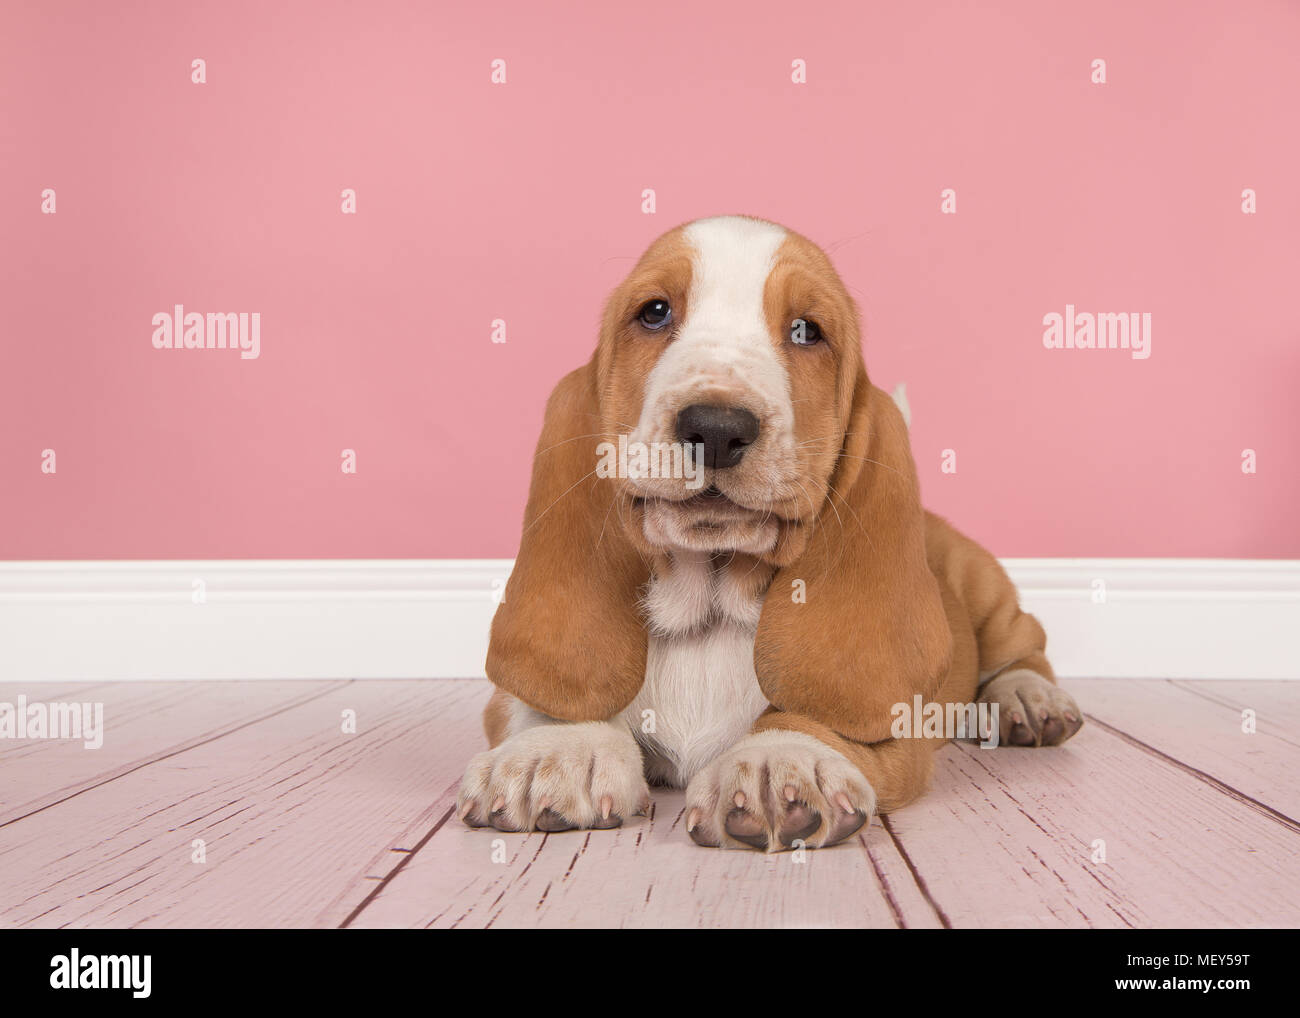 cute tan and white basset hound puppy lying down seen from the front